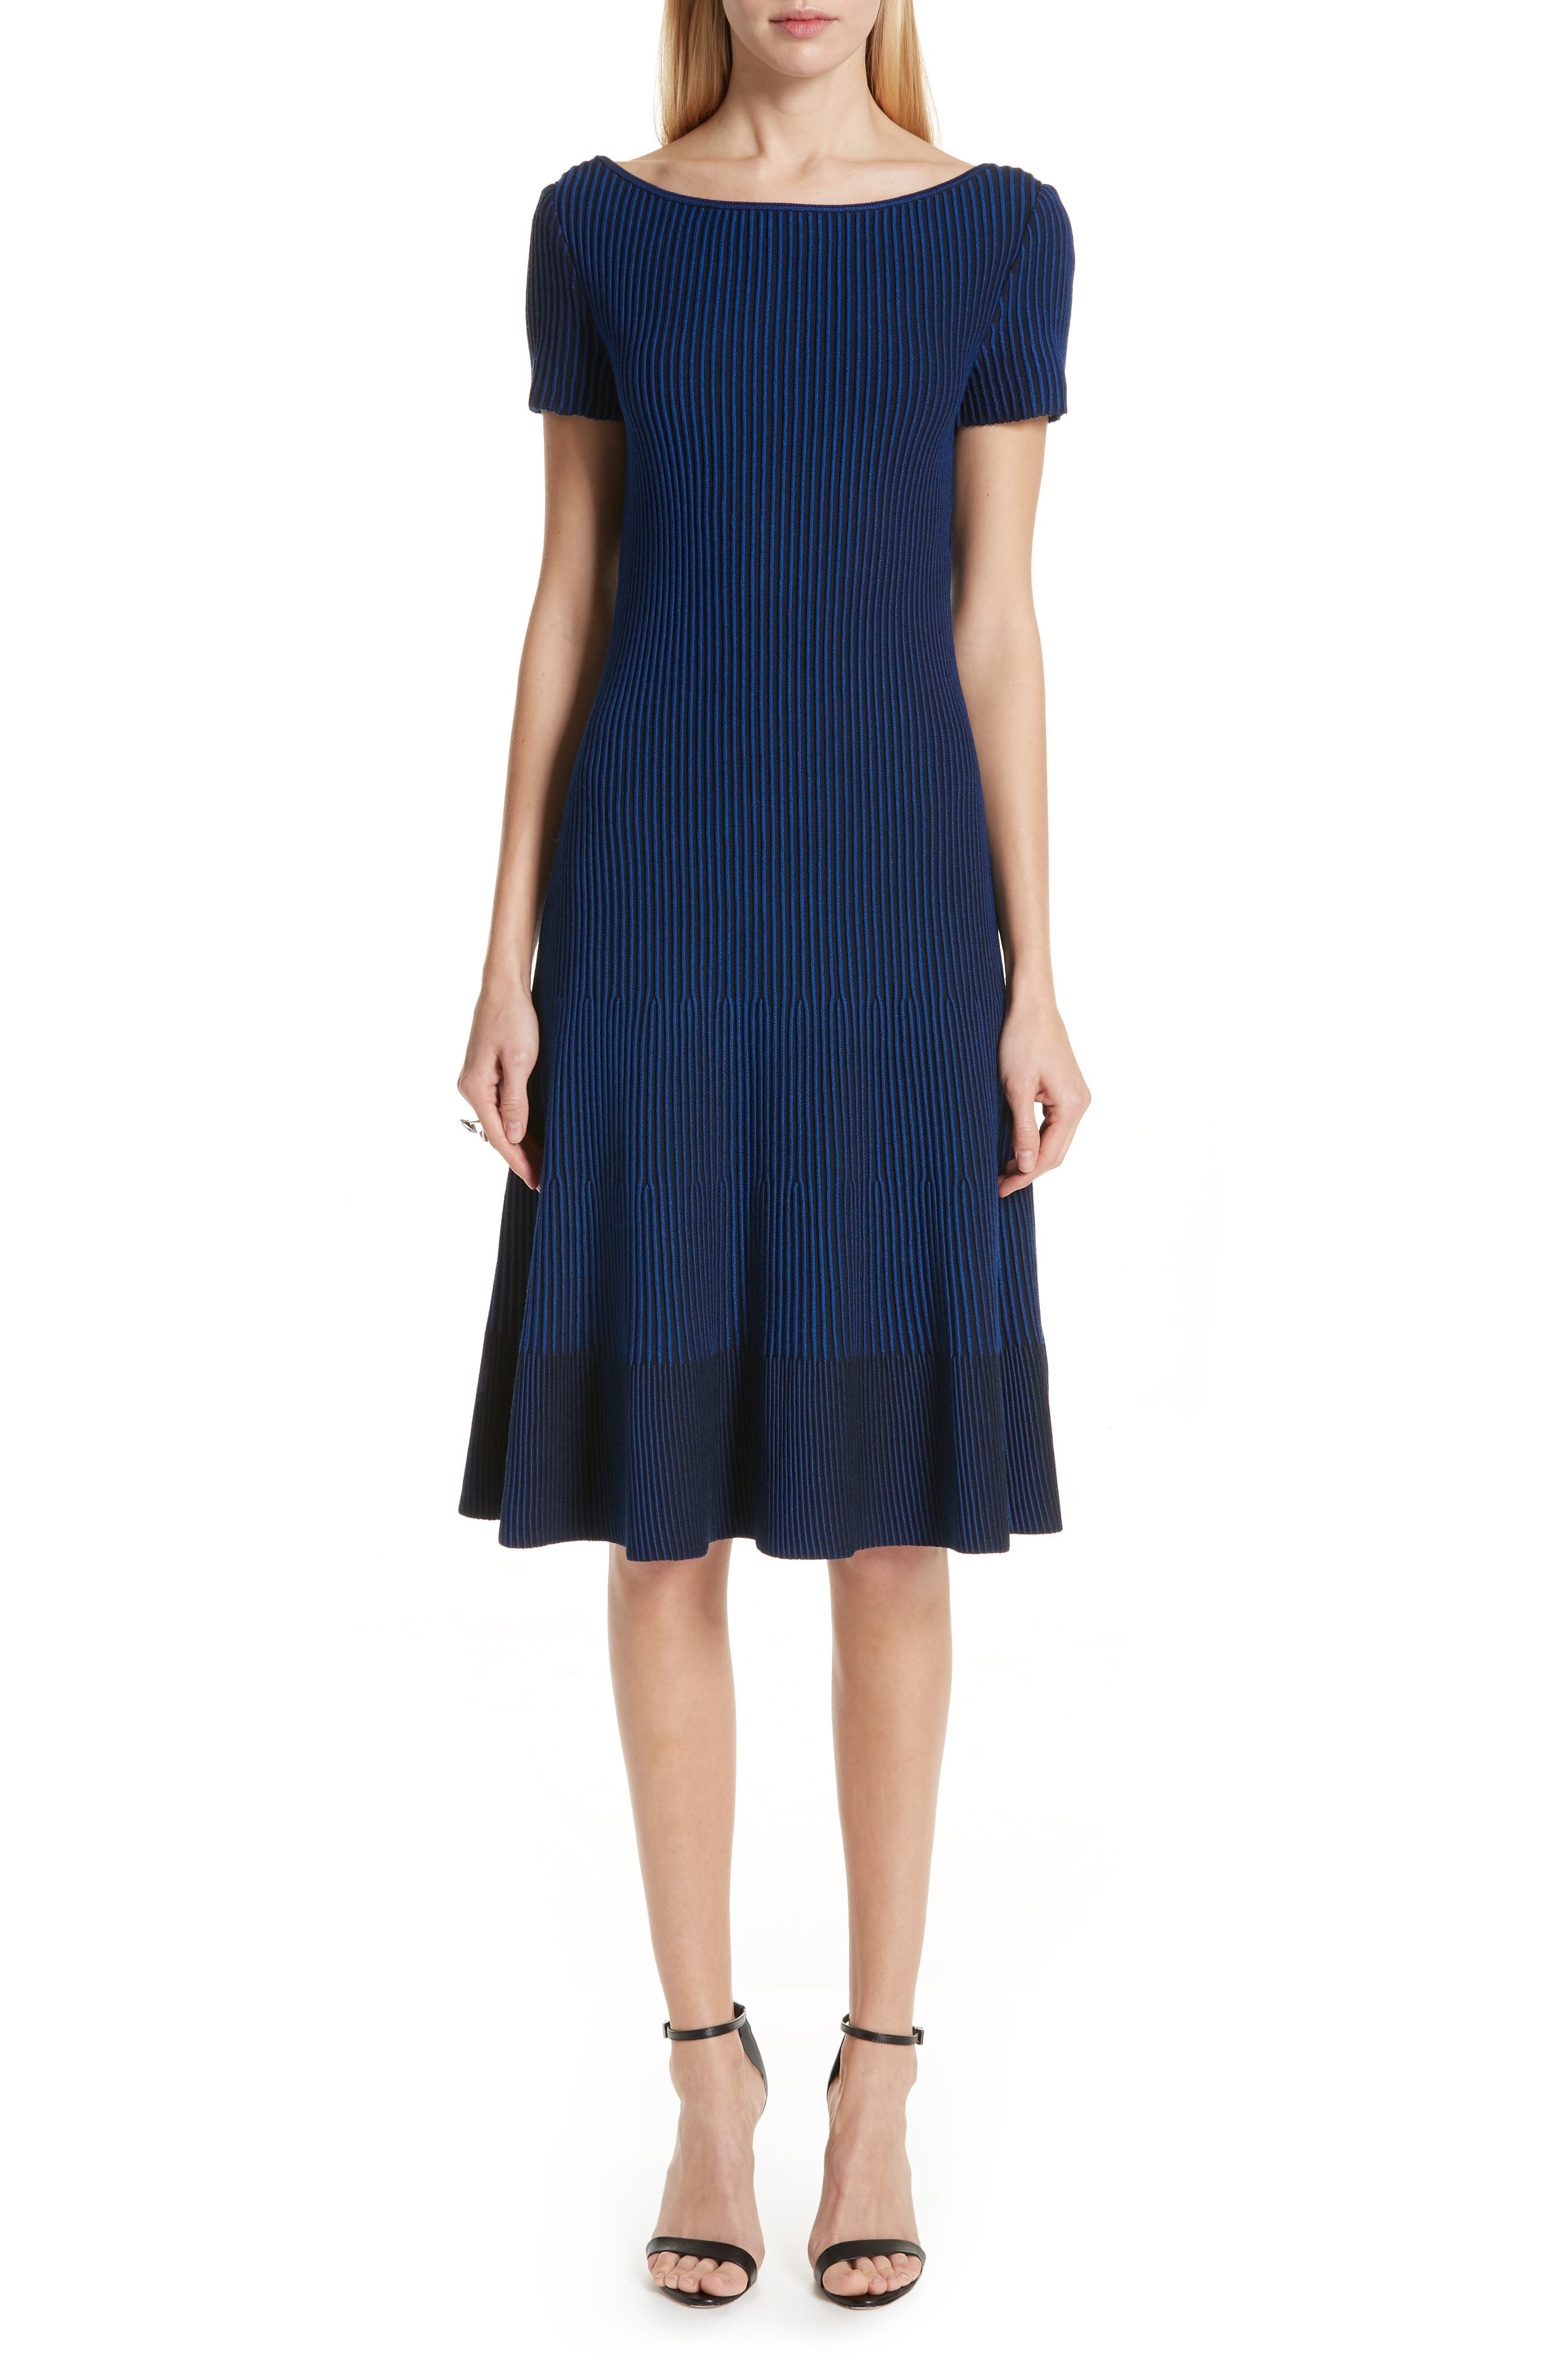 ST. JOHN COLLECTION, Ottoman Fit & Flare Sweater Dress, Main thumbnail 1, color, AZUL/ NAVY MULTI